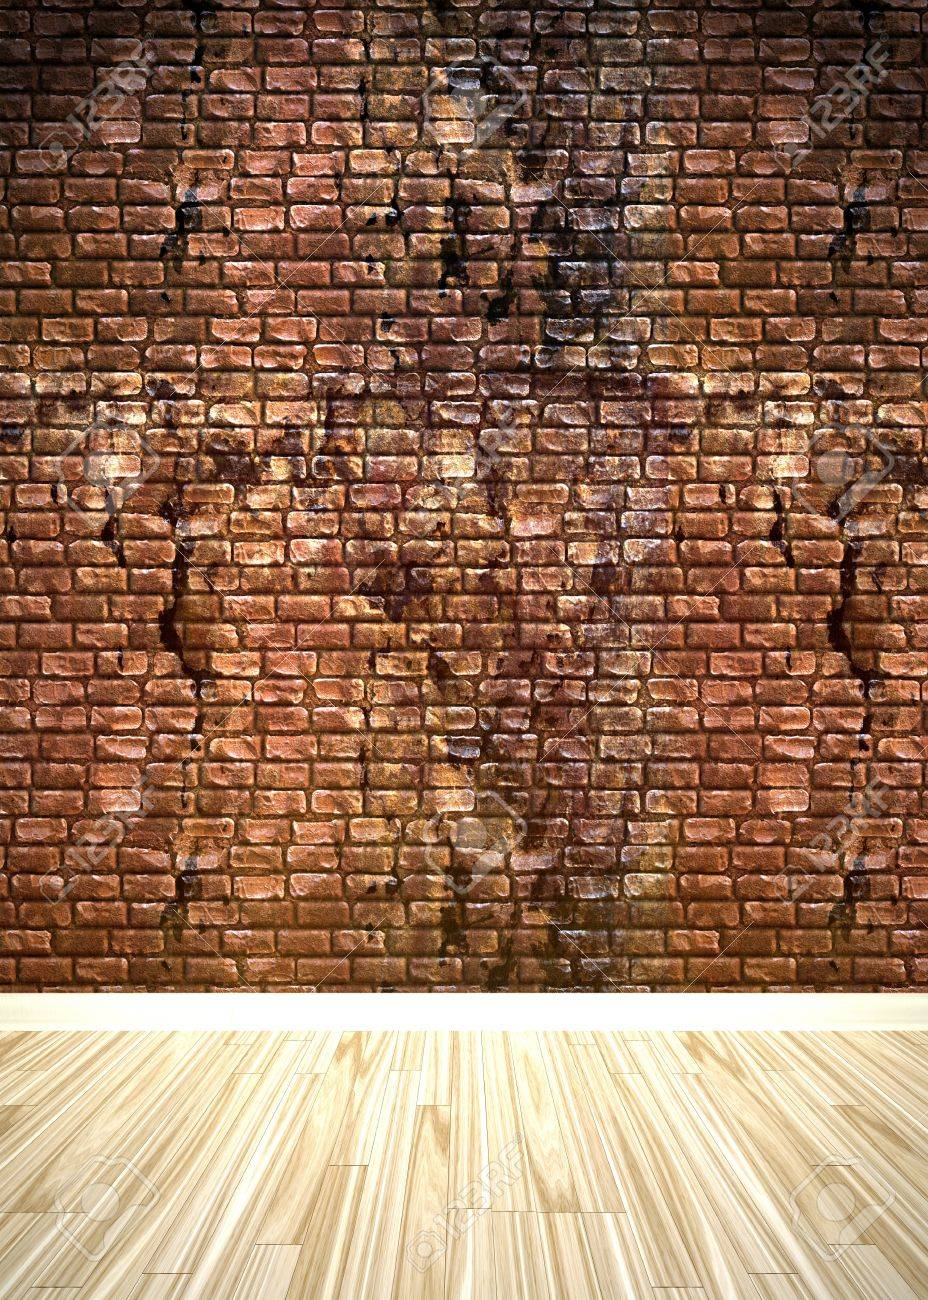 A grungy brick wall interior background with wood parquet flooring. Stock Photo - 7106465